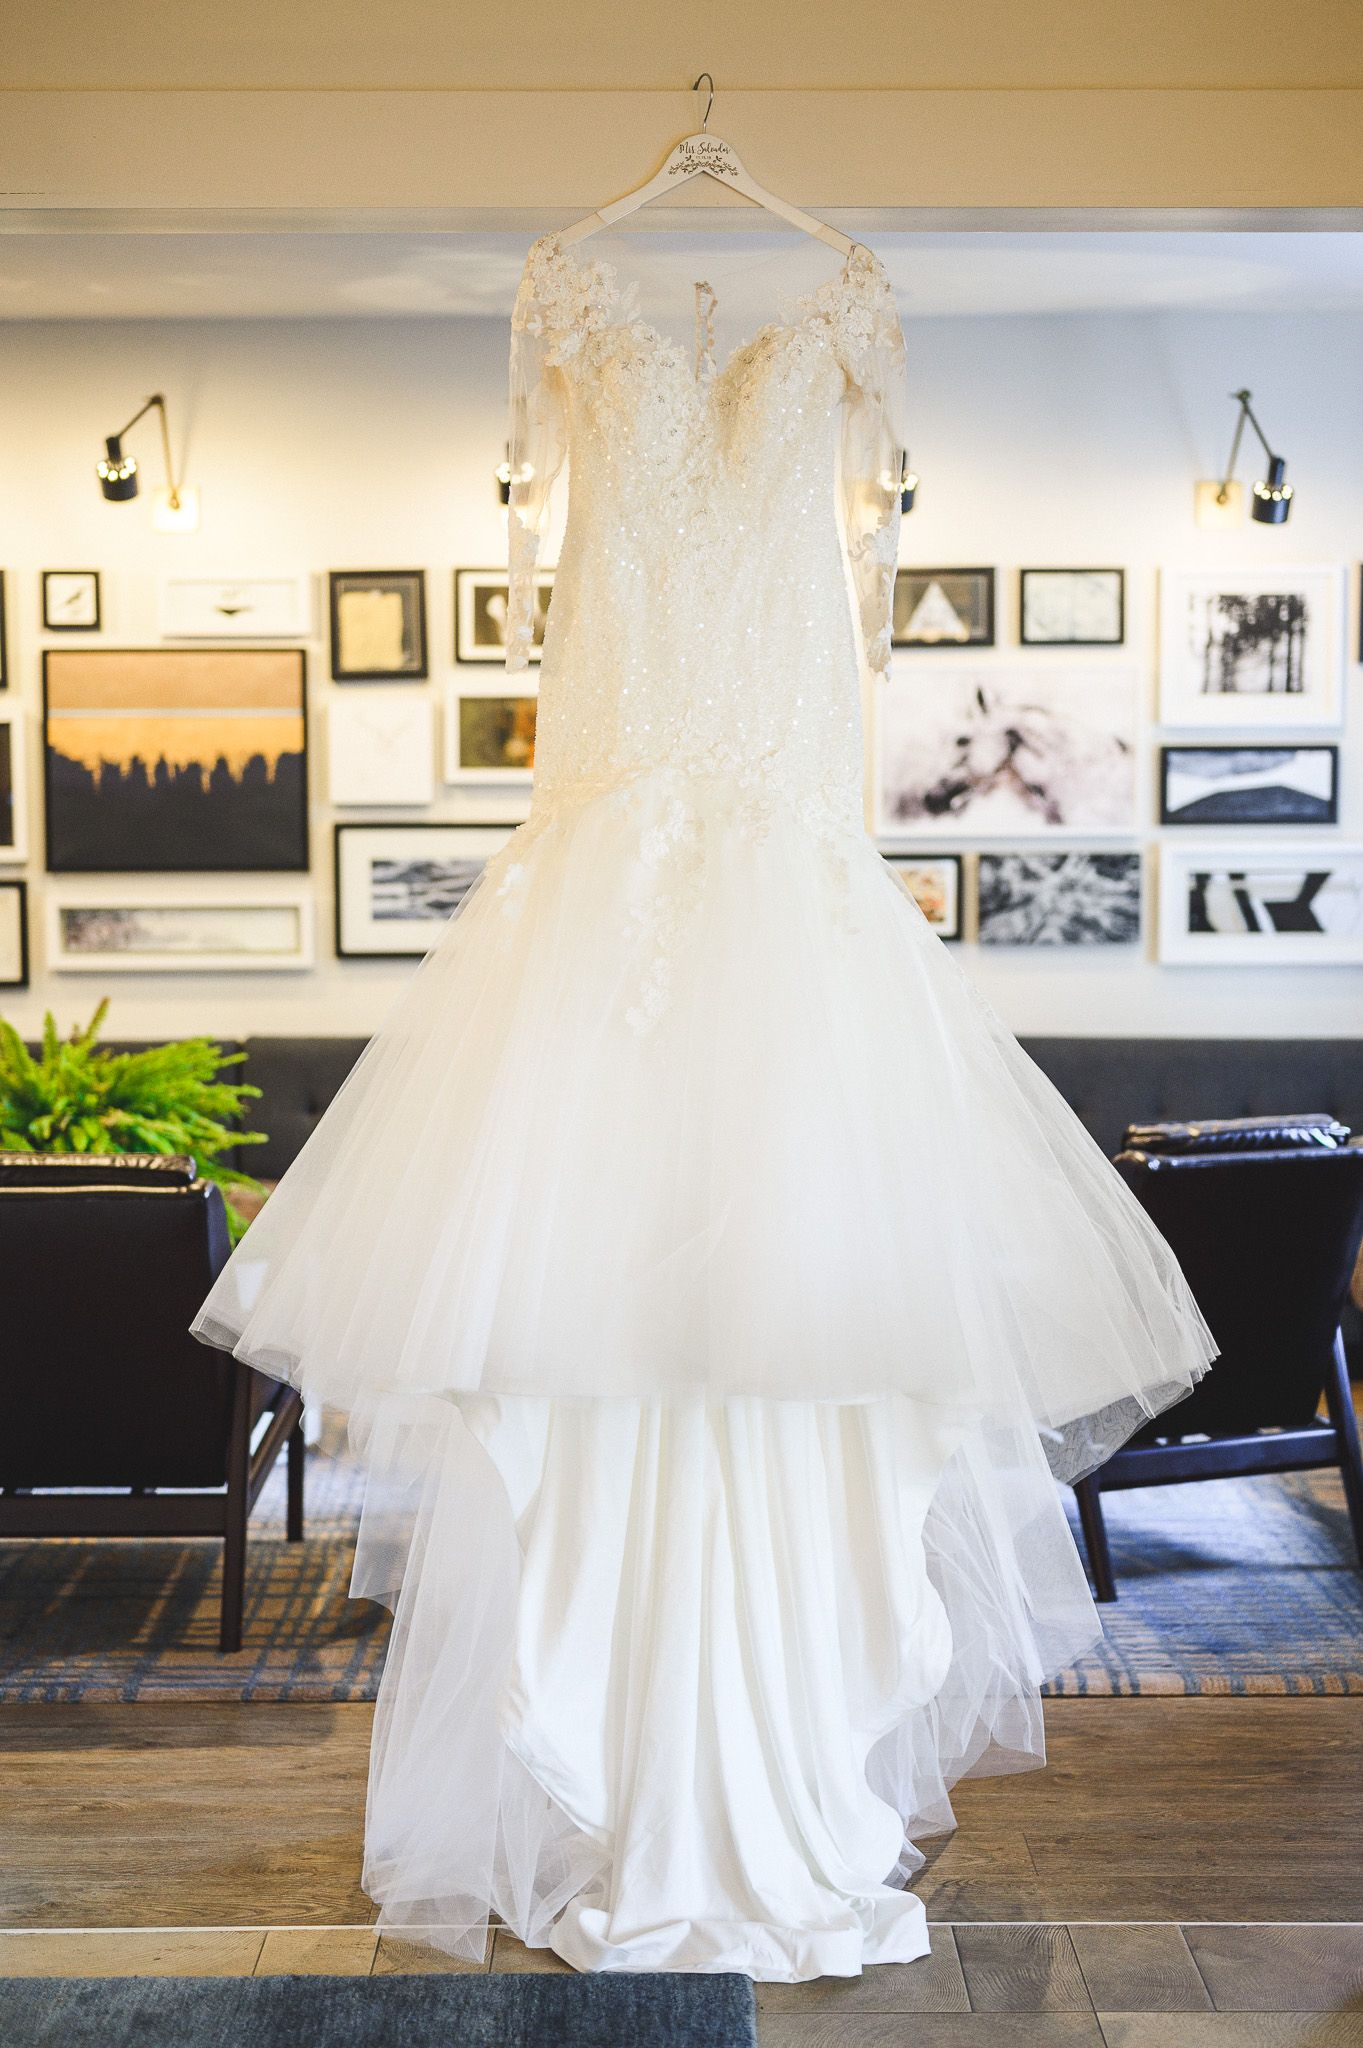 bride's dress hanging in hotel details